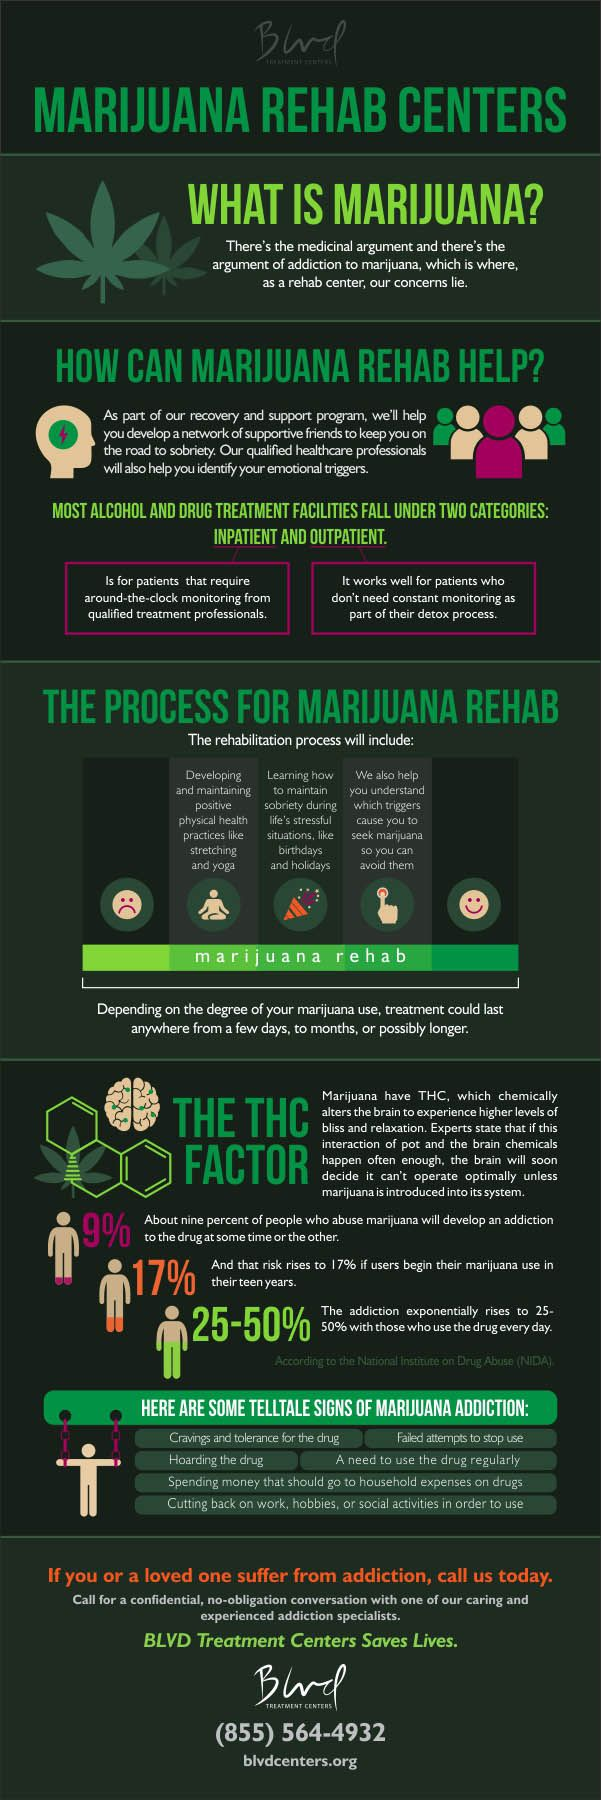 https://www.blvdcenters.org/marijuana-rehab-centers  BLVD's marijuana rehab center helps you and your loved ones rehab, detox and recover from marijuana addiction. Inpatient and outpatient facility available!